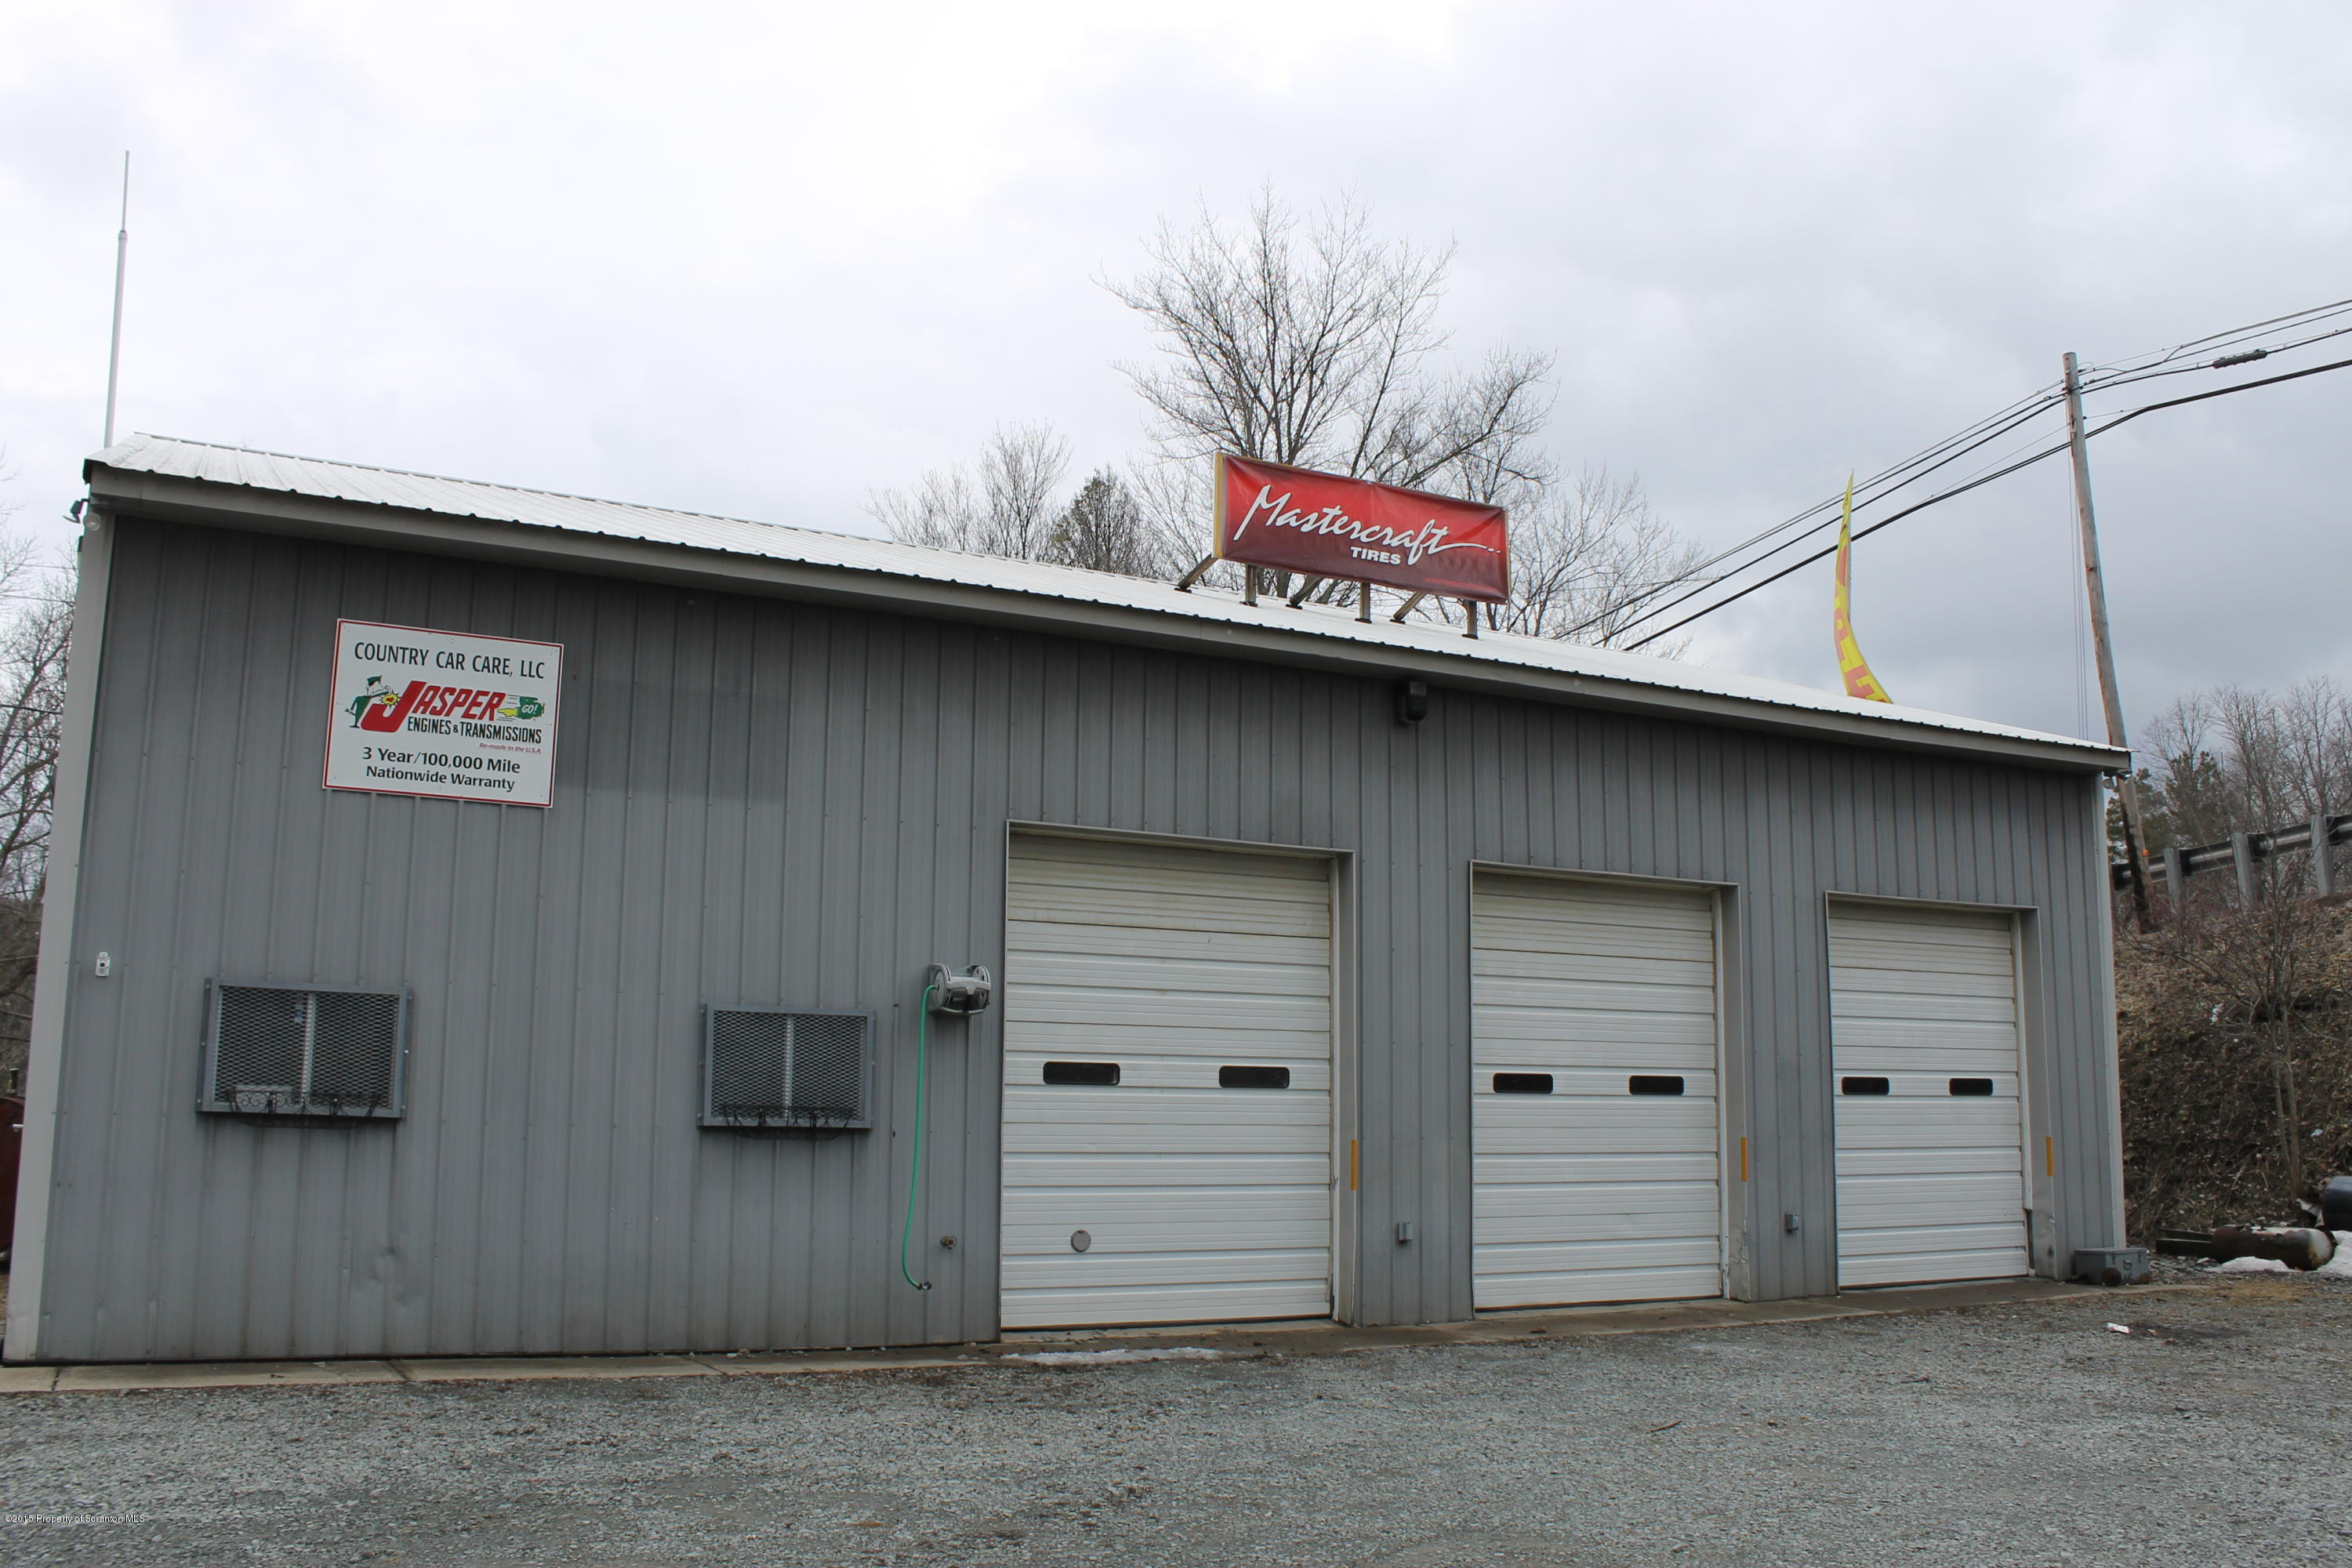 2696 SR 11, Dalton, Pennsylvania 18414, ,1 BathroomBathrooms,Commercial,For Lease,SR 11,15-1106